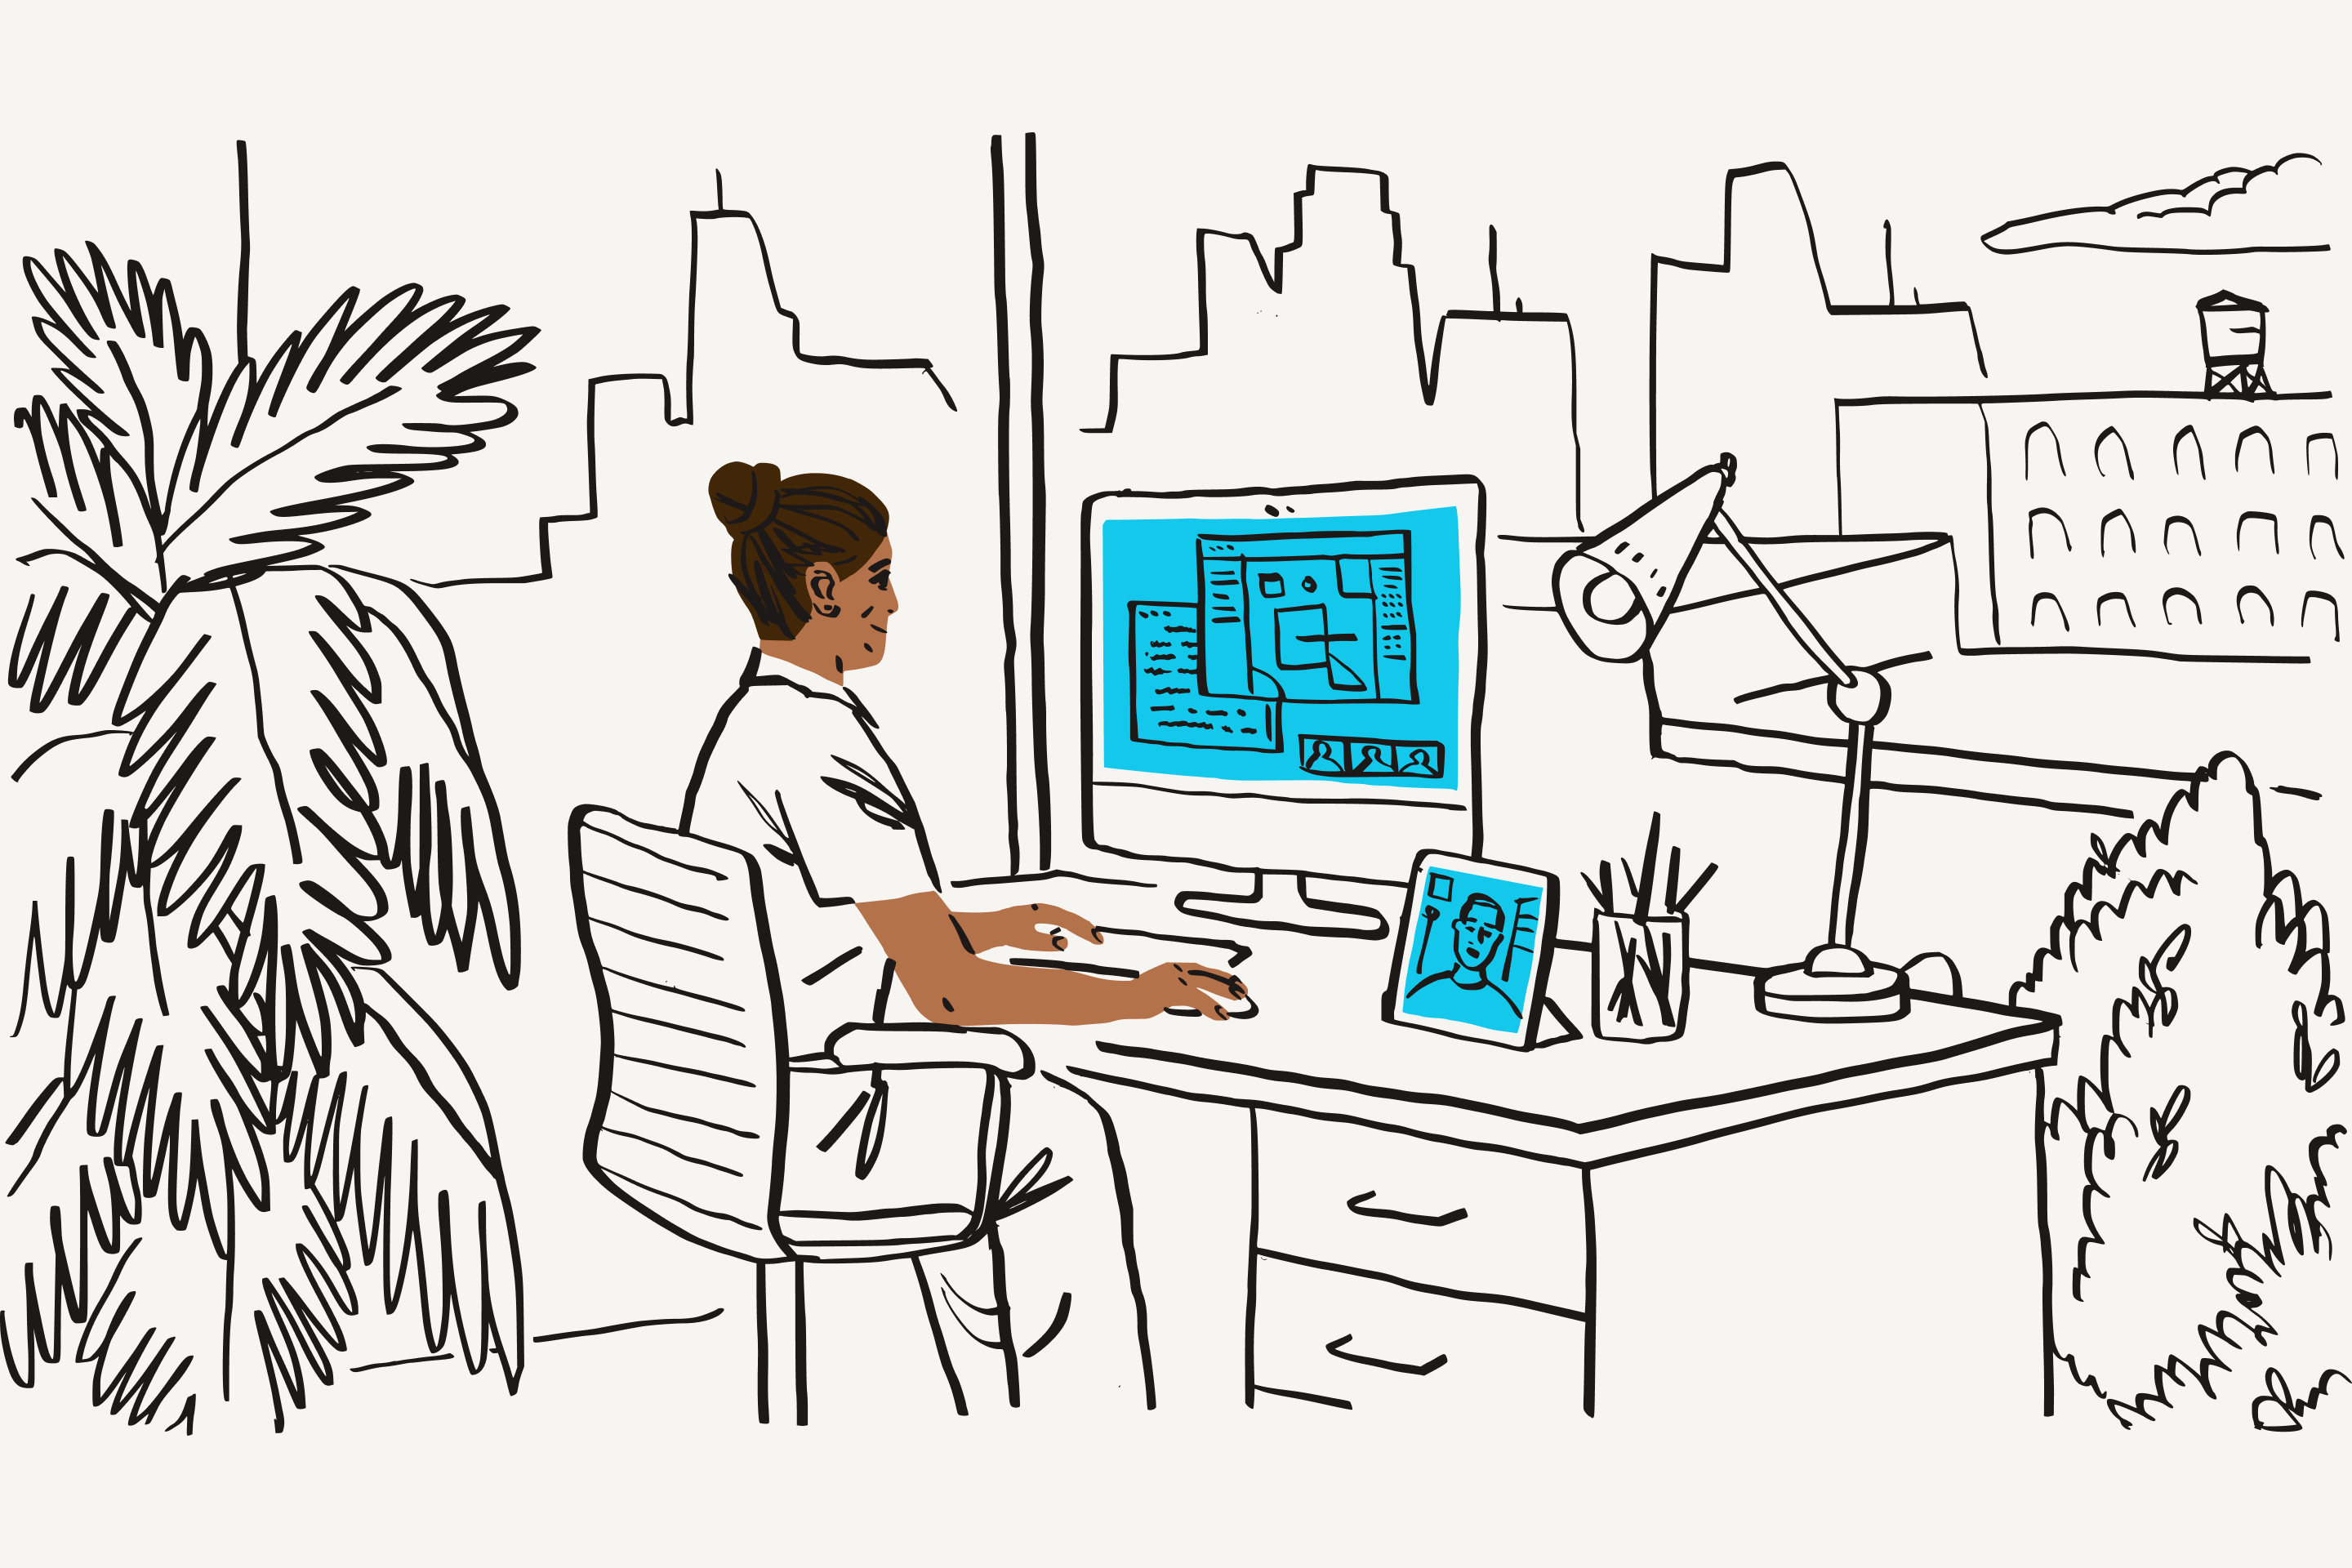 A woman works on a computer while sitting at her desk